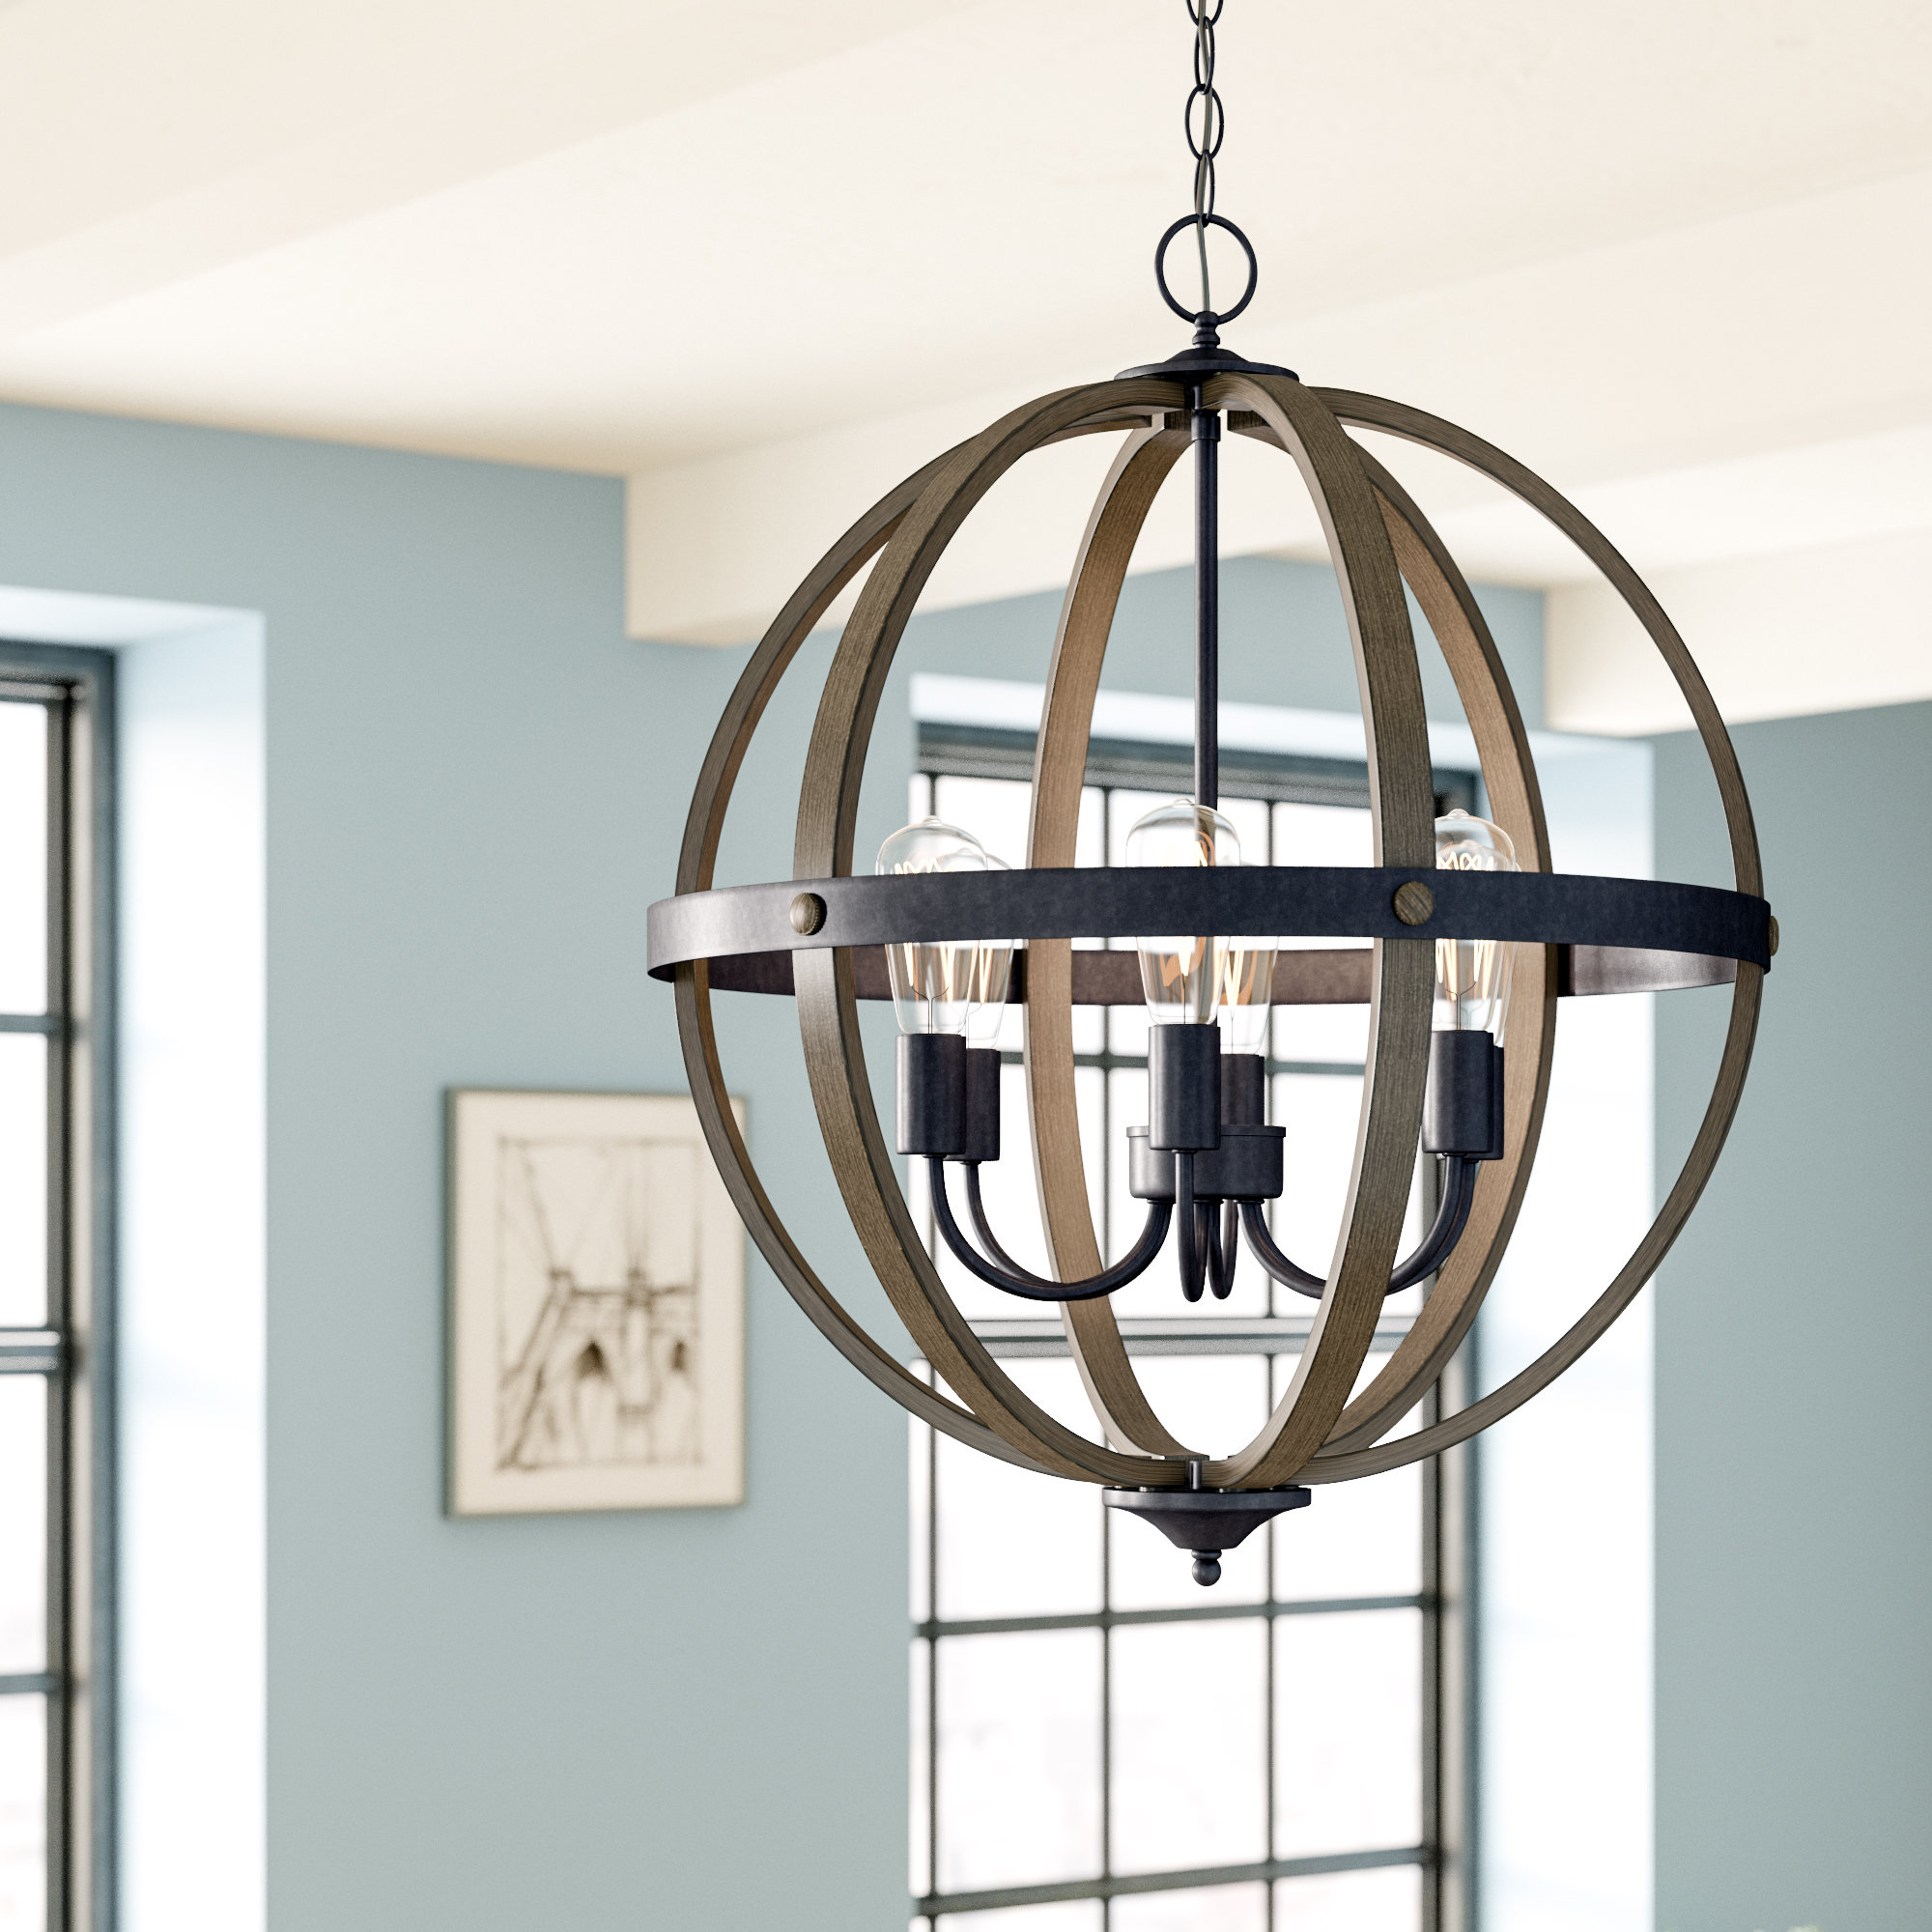 Globe Chandeliers Sale – Up To 65% Off Until September 30Th With Regard To Shipststour 3 Light Globe Chandeliers (View 14 of 30)